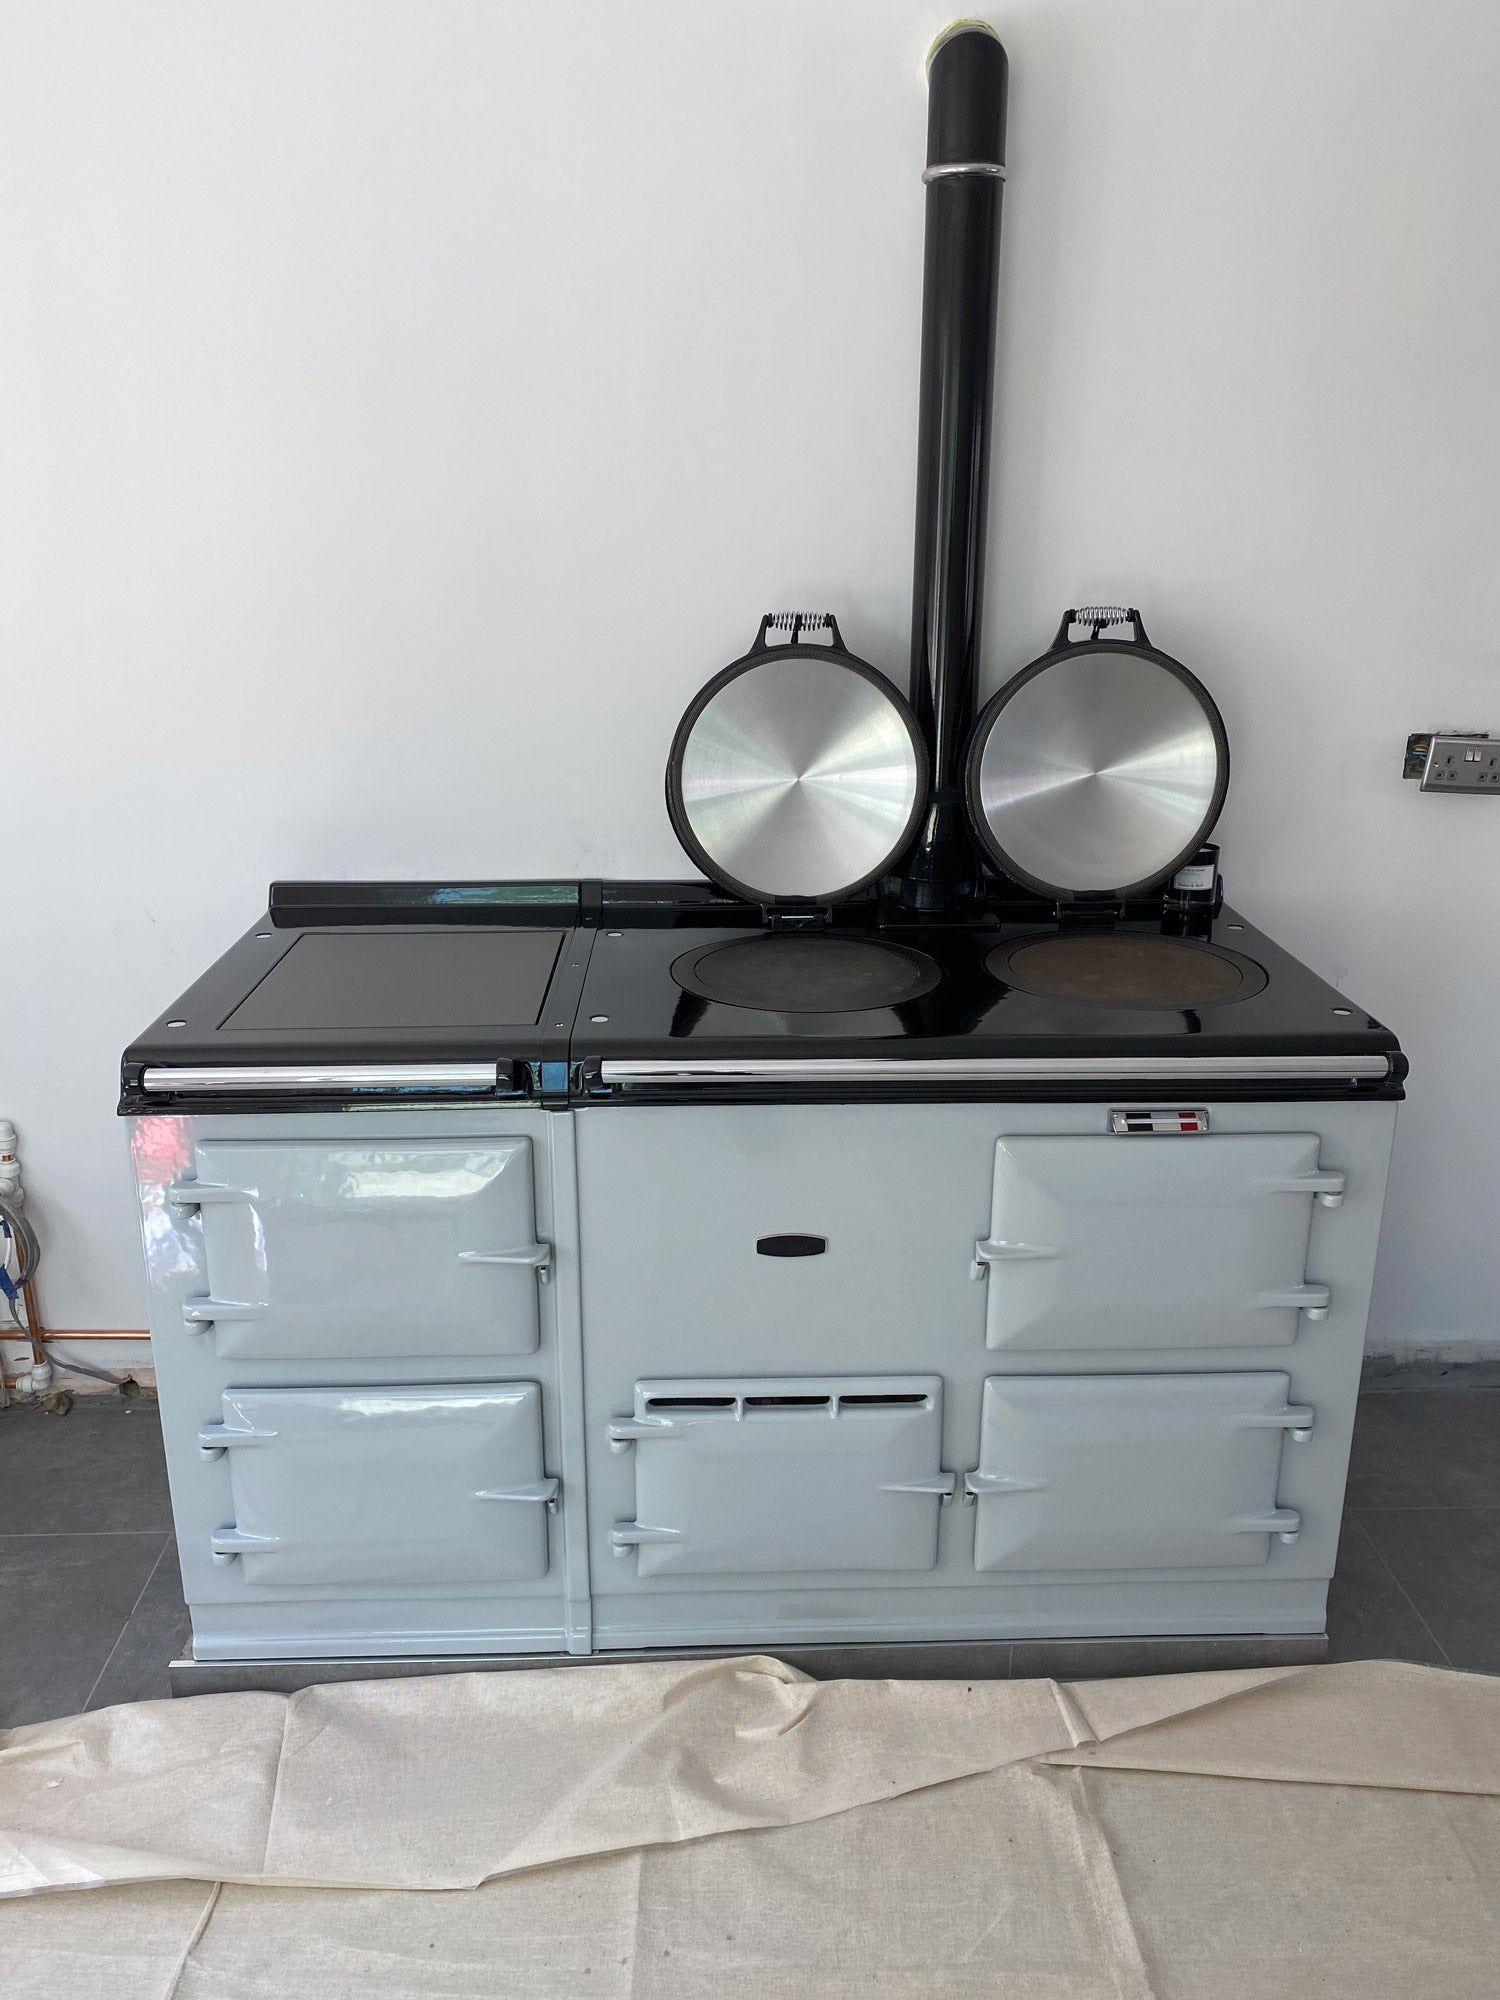 British Racing Green Aga range cooker re-enamelled in Light Grey